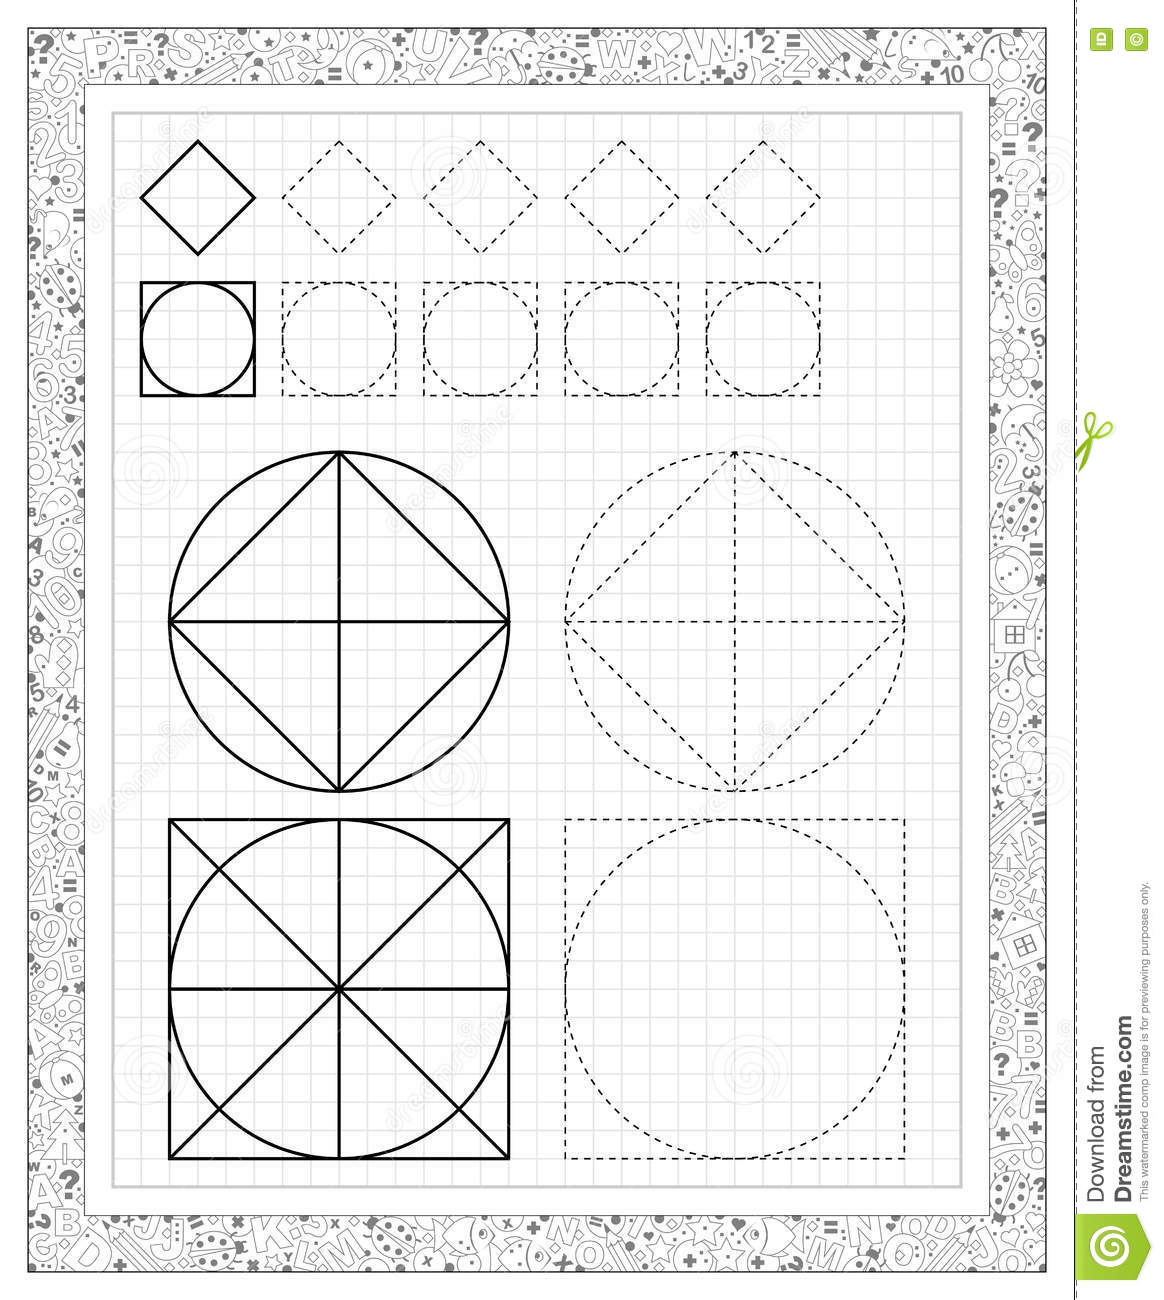 Black And White Worksheet On A Square Paper With Exercises For Little Children Stock Vector